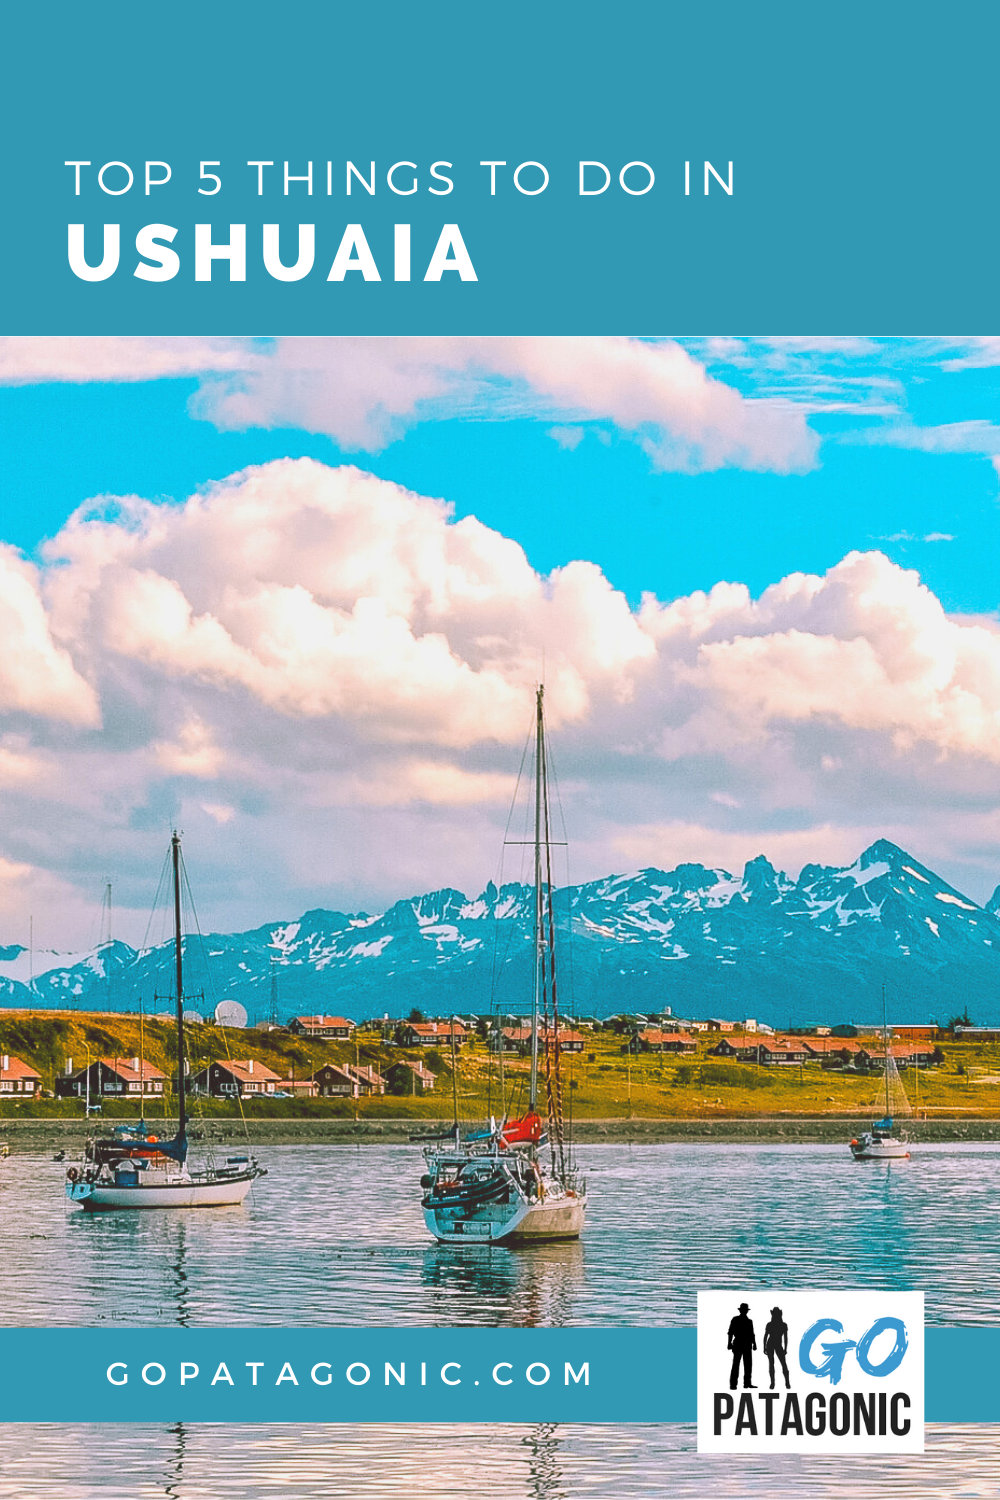 Things to do in Ushuaia, top 5 must-see